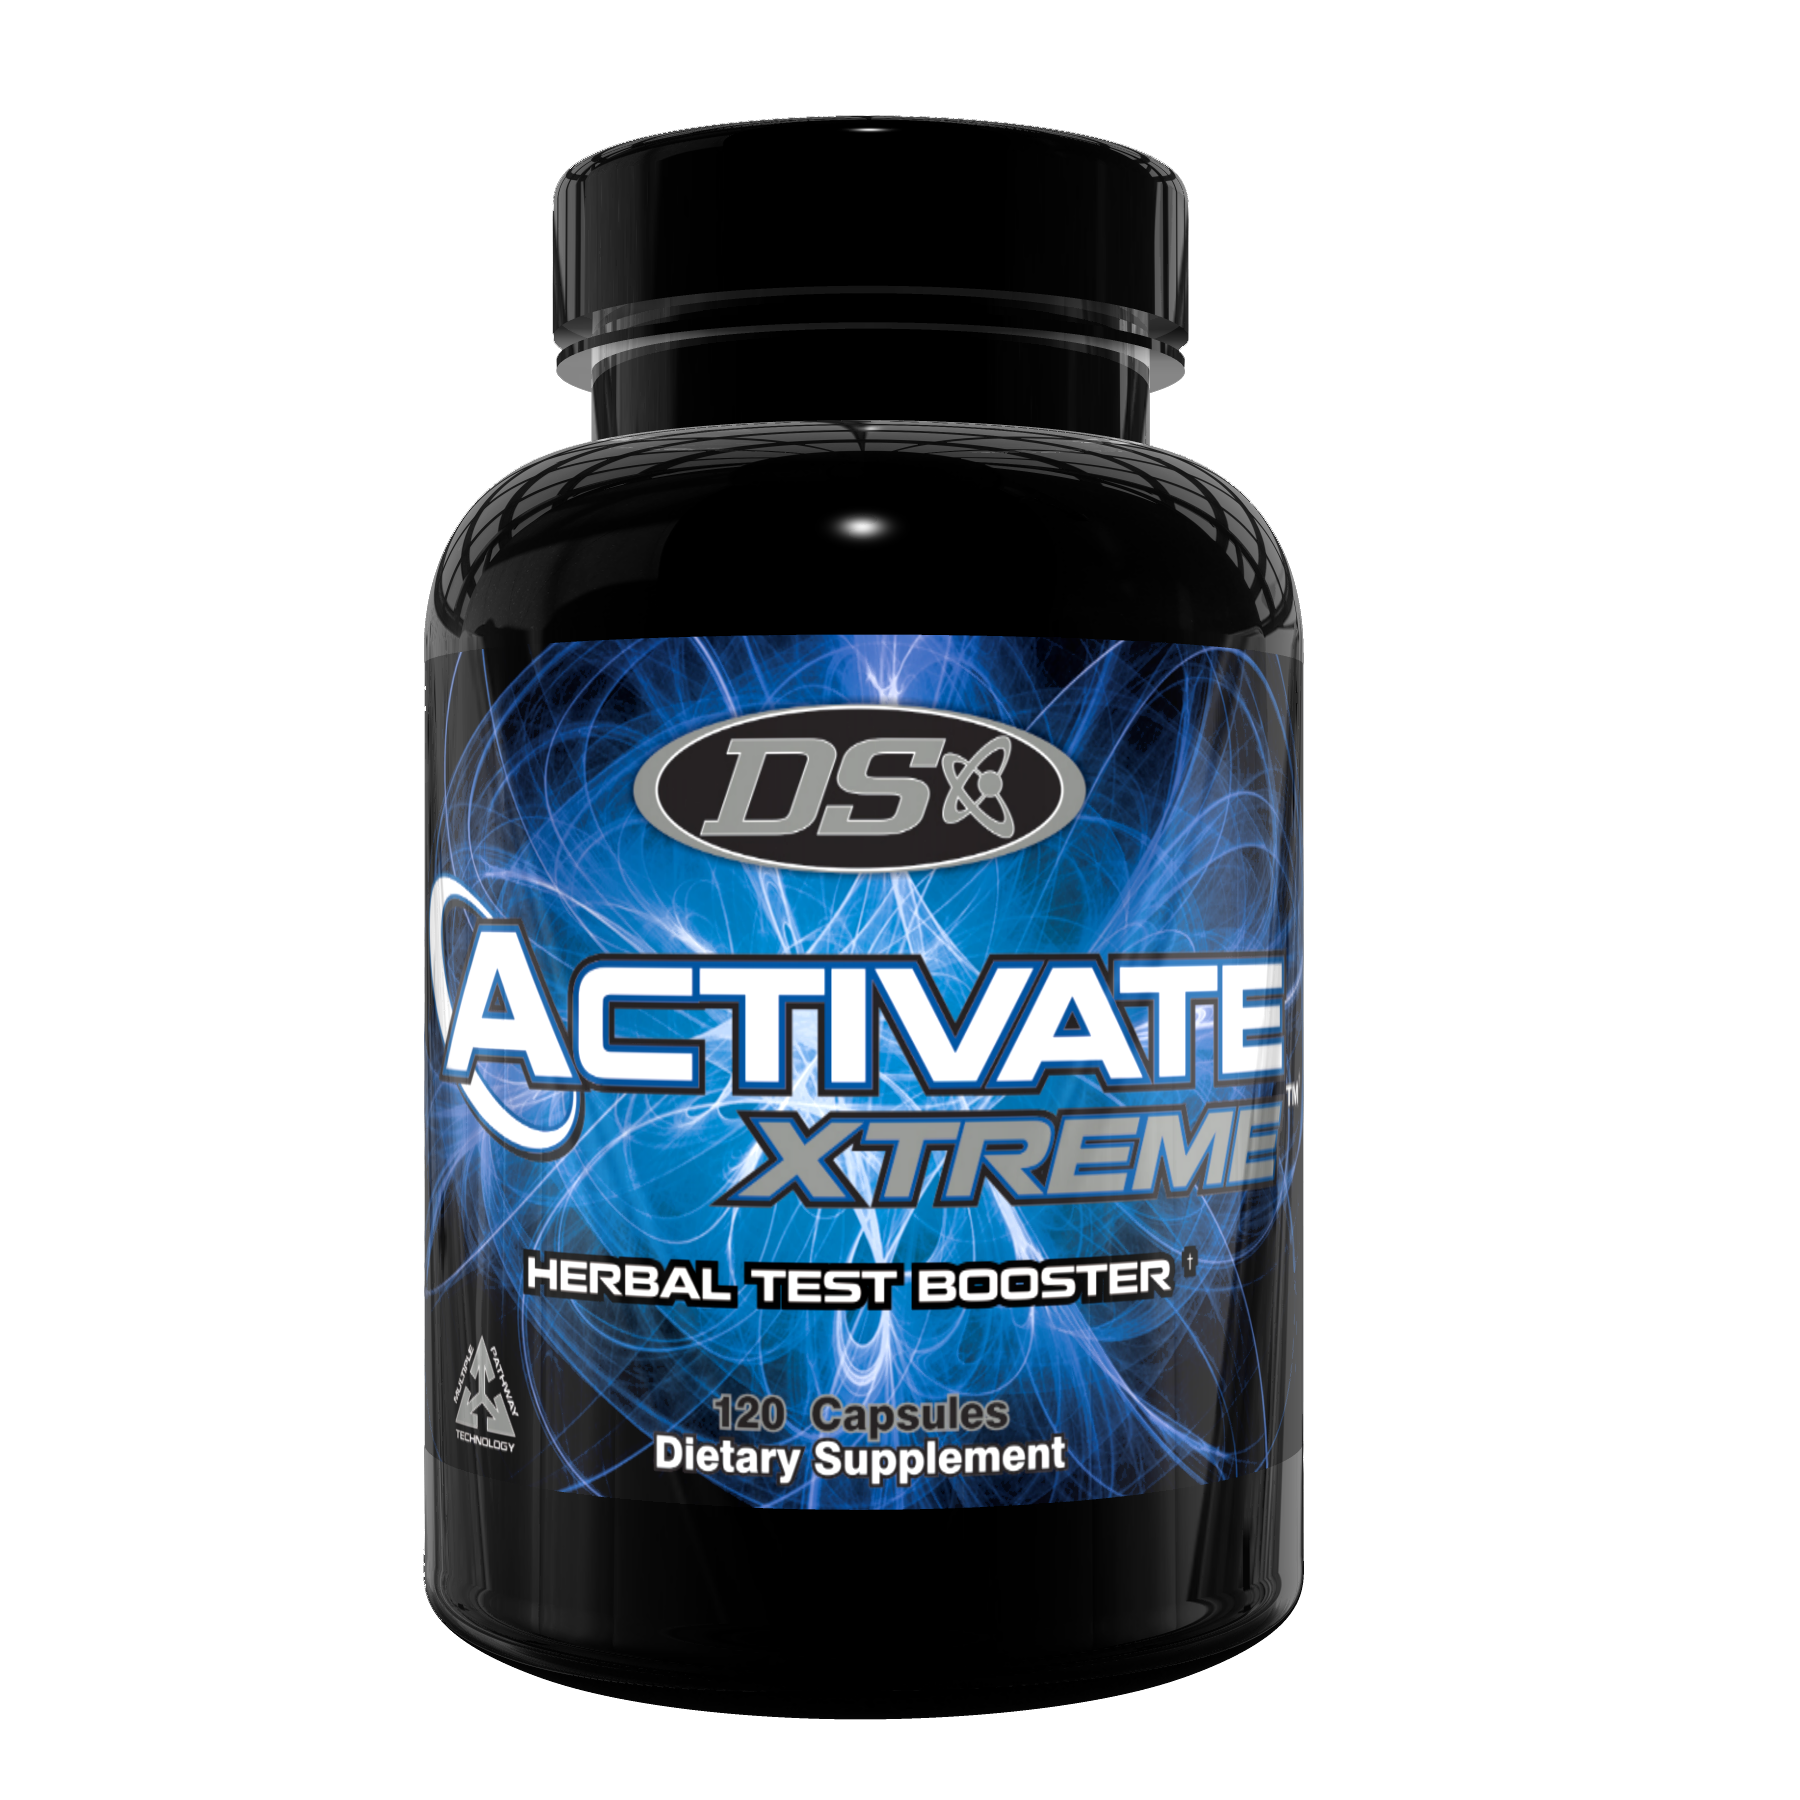 ACTIVATE XTREME by Driven Sports